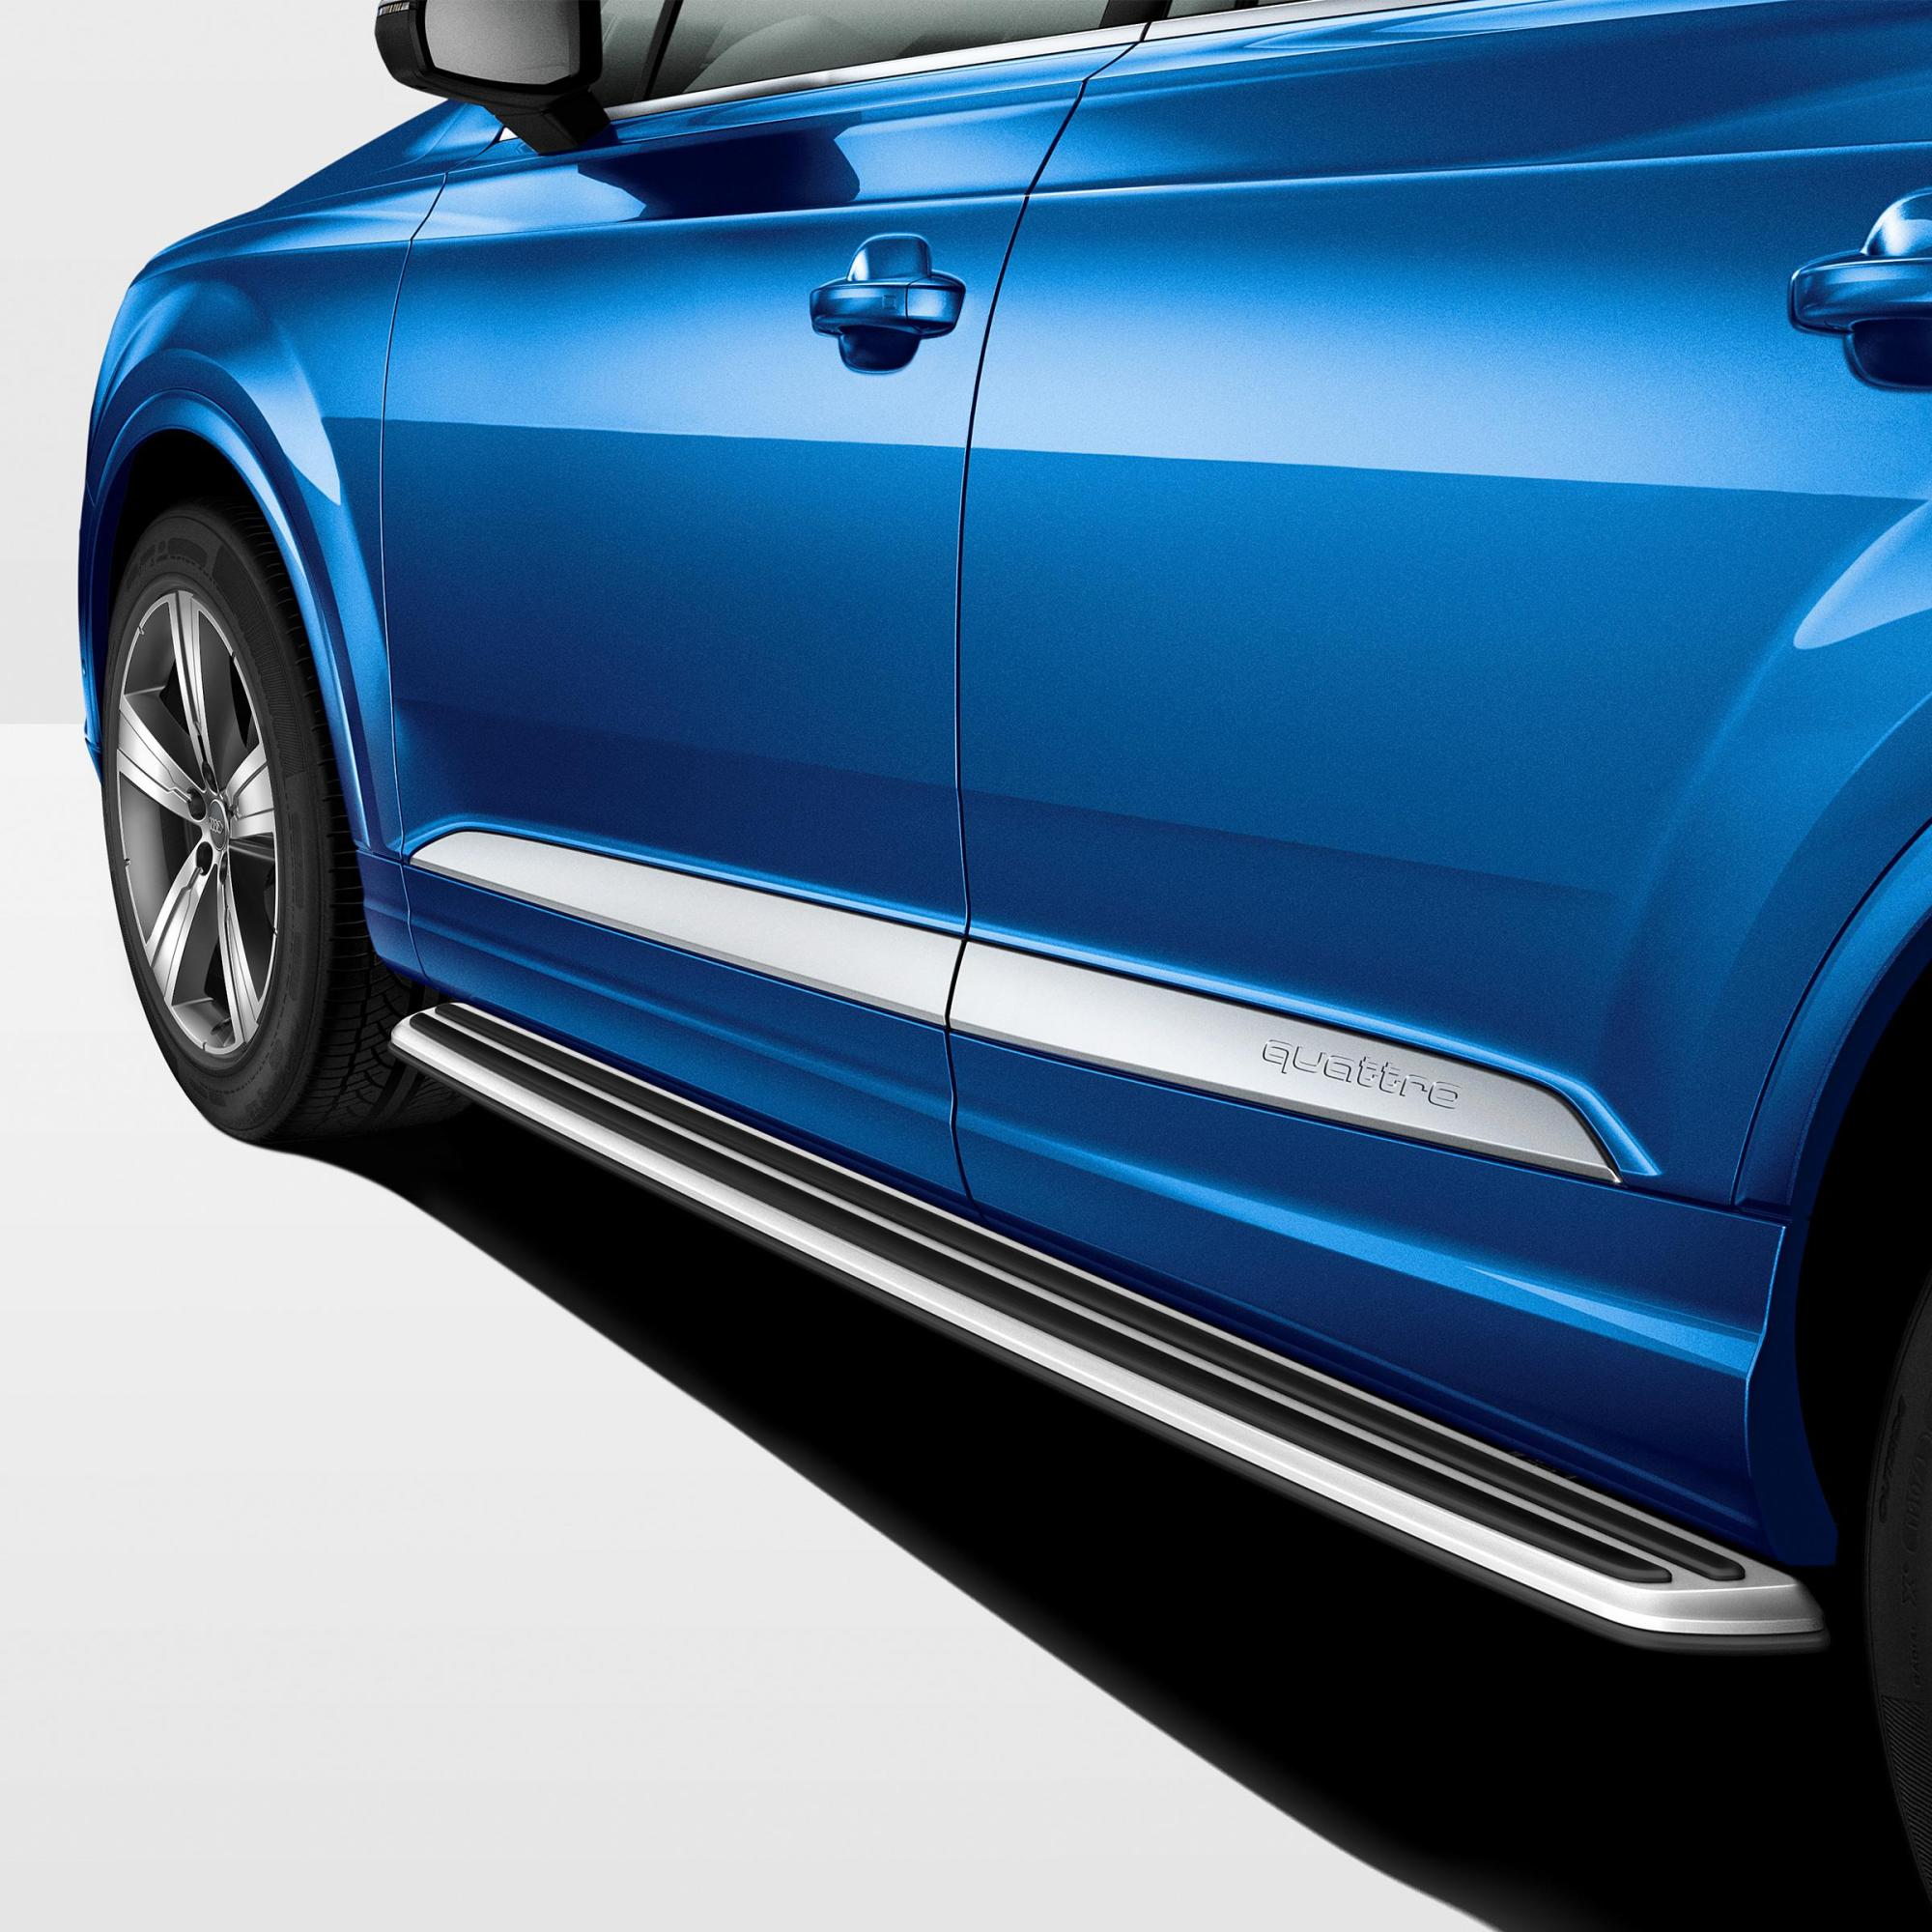 hight resolution of as7 2019 audi q7 2019 audi q7 running board kit boards side